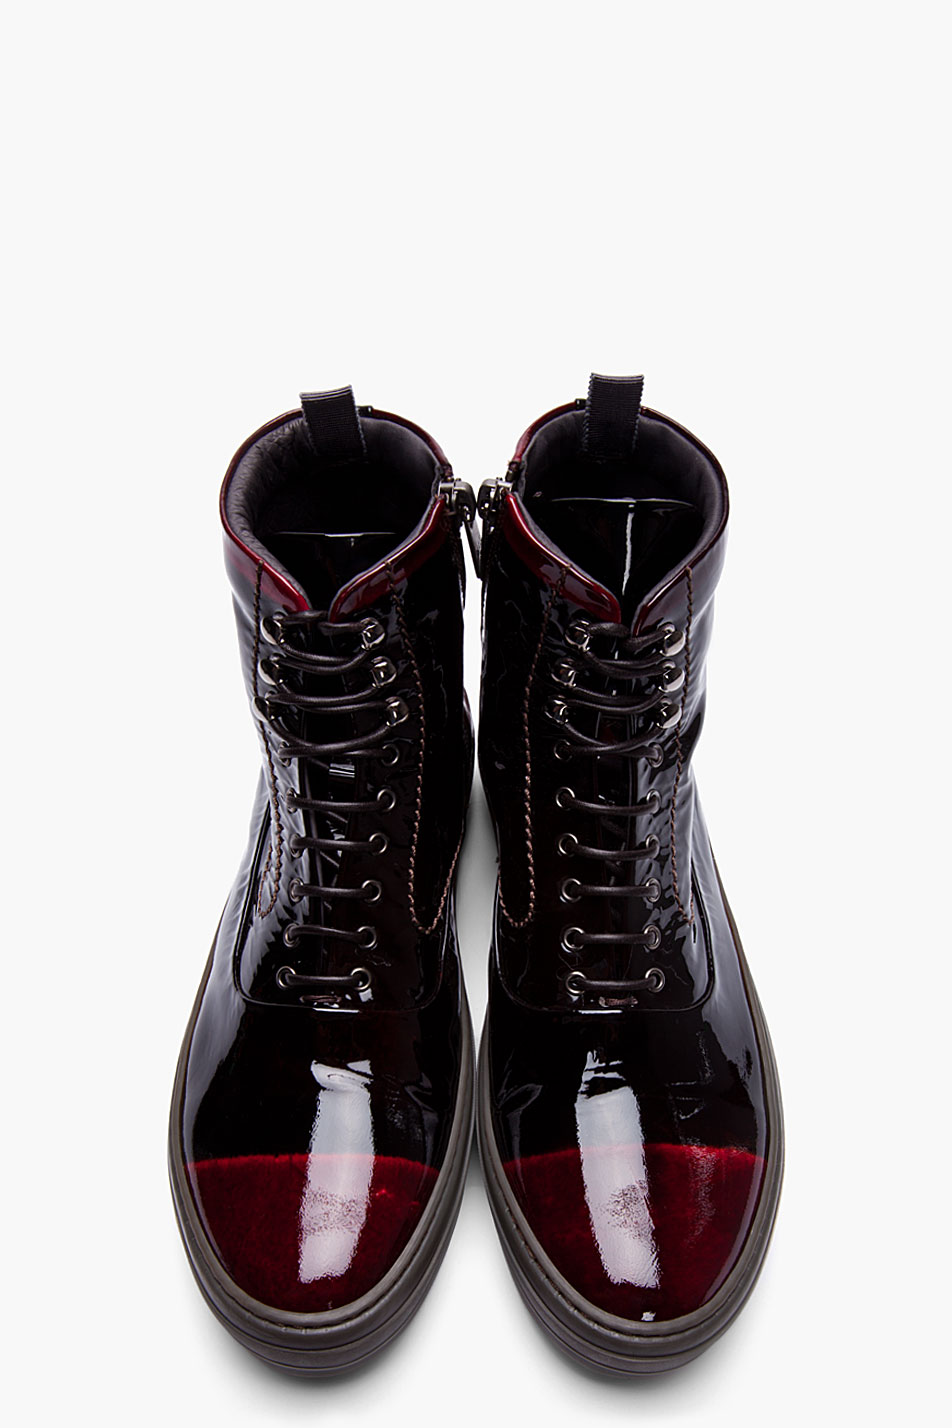 Alexander Mcqueen Black And Burgundy Patent Leather High